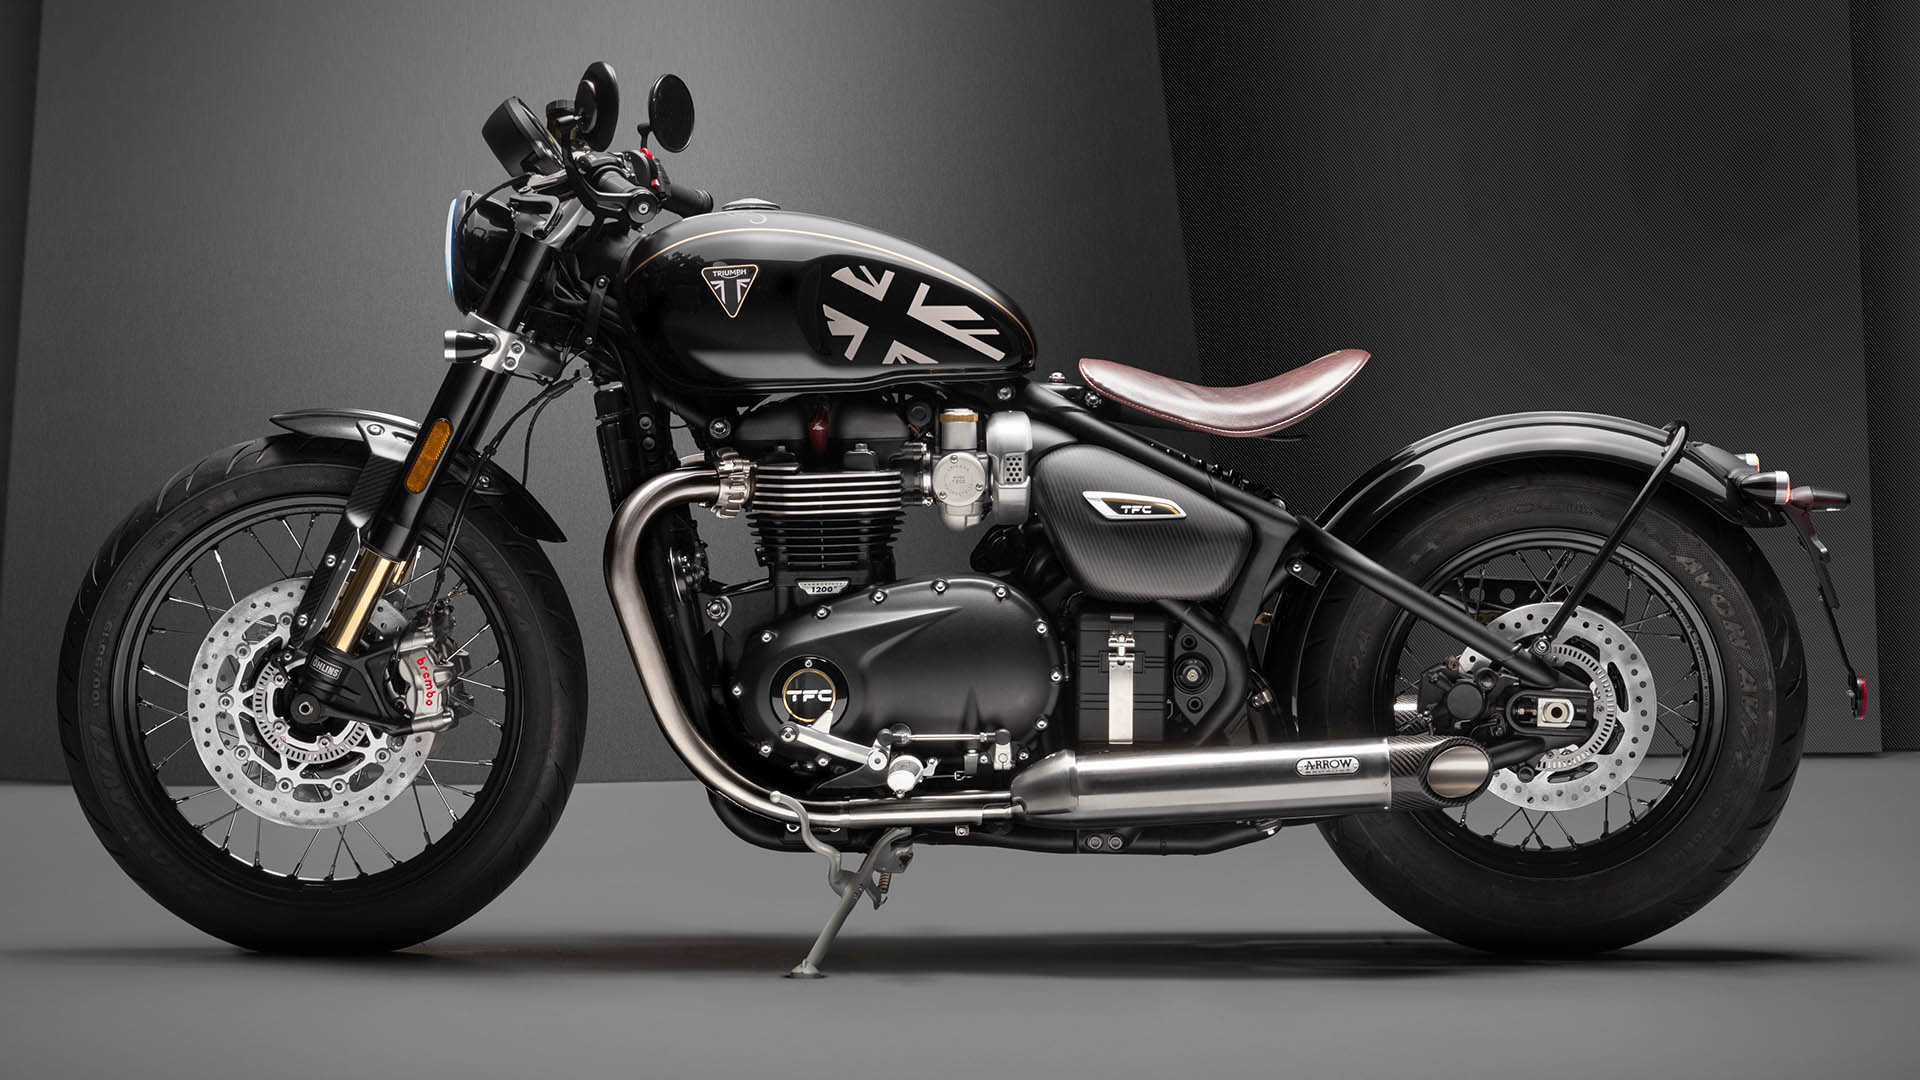 2020 Triumph Bobber Tfc First Look 14 Fast Facts